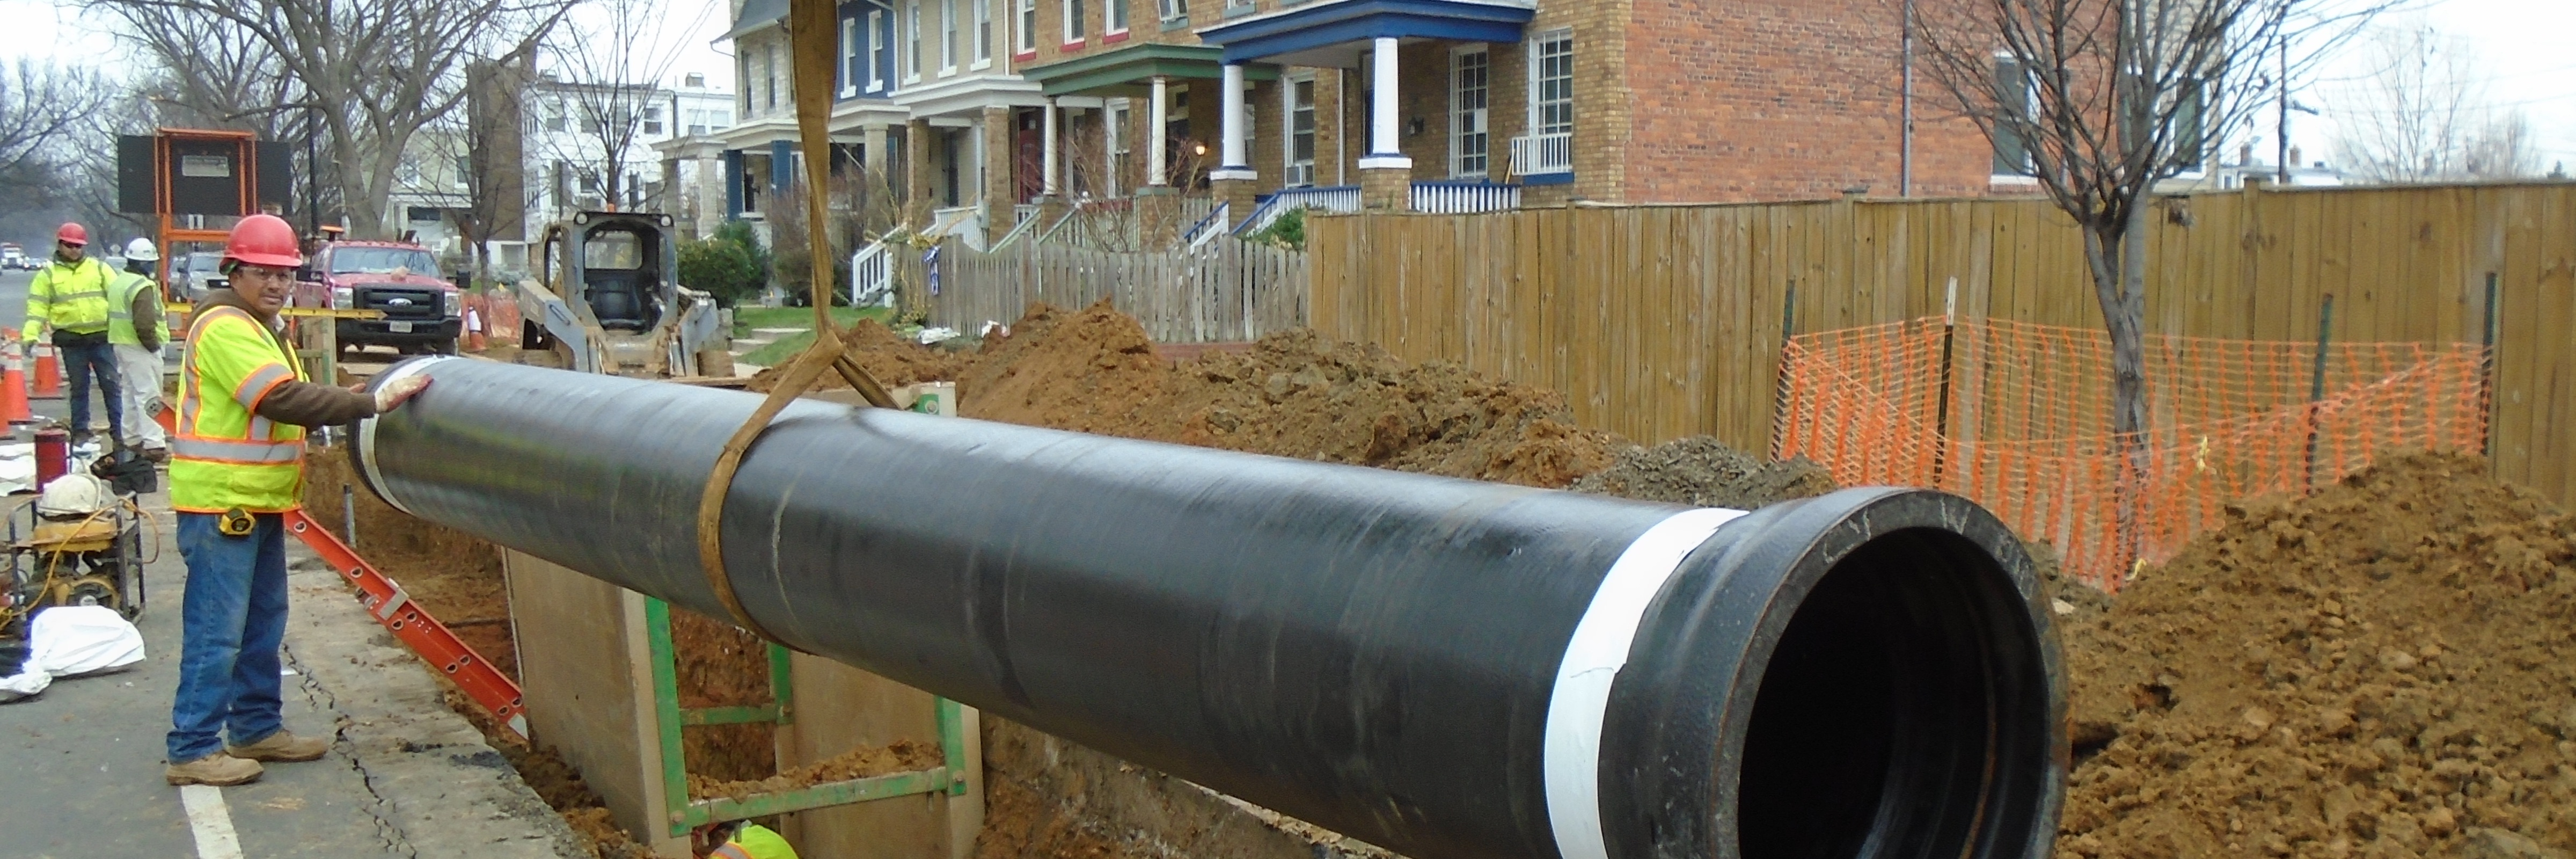 """Installing New 30"""" Water Main for DC WATER"""